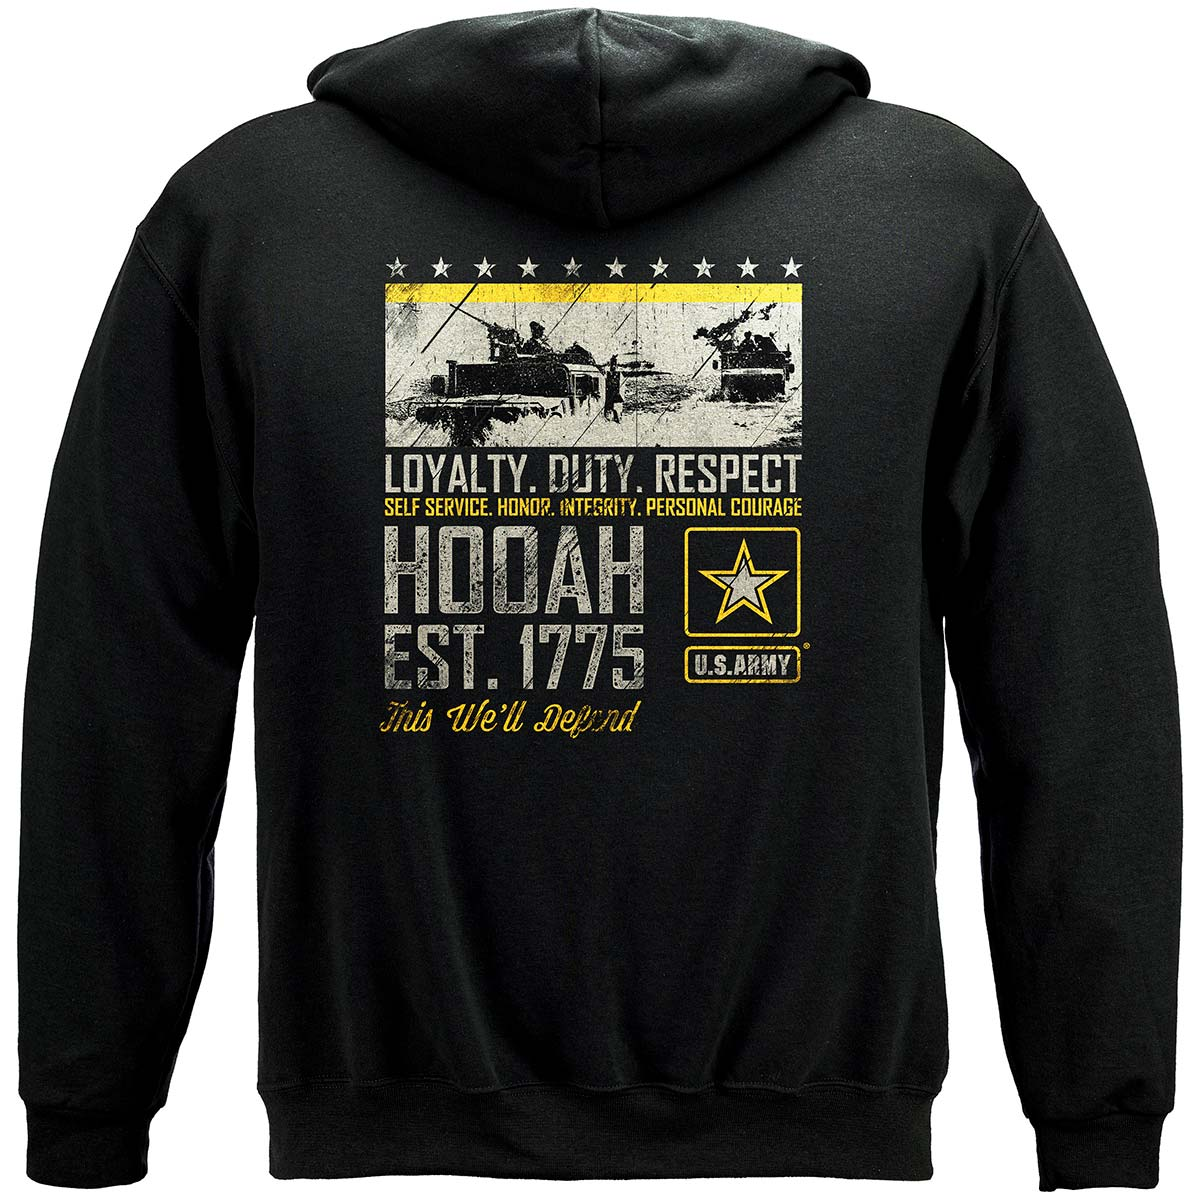 Army Duty Hooah Premium Hooded Sweat Shirt